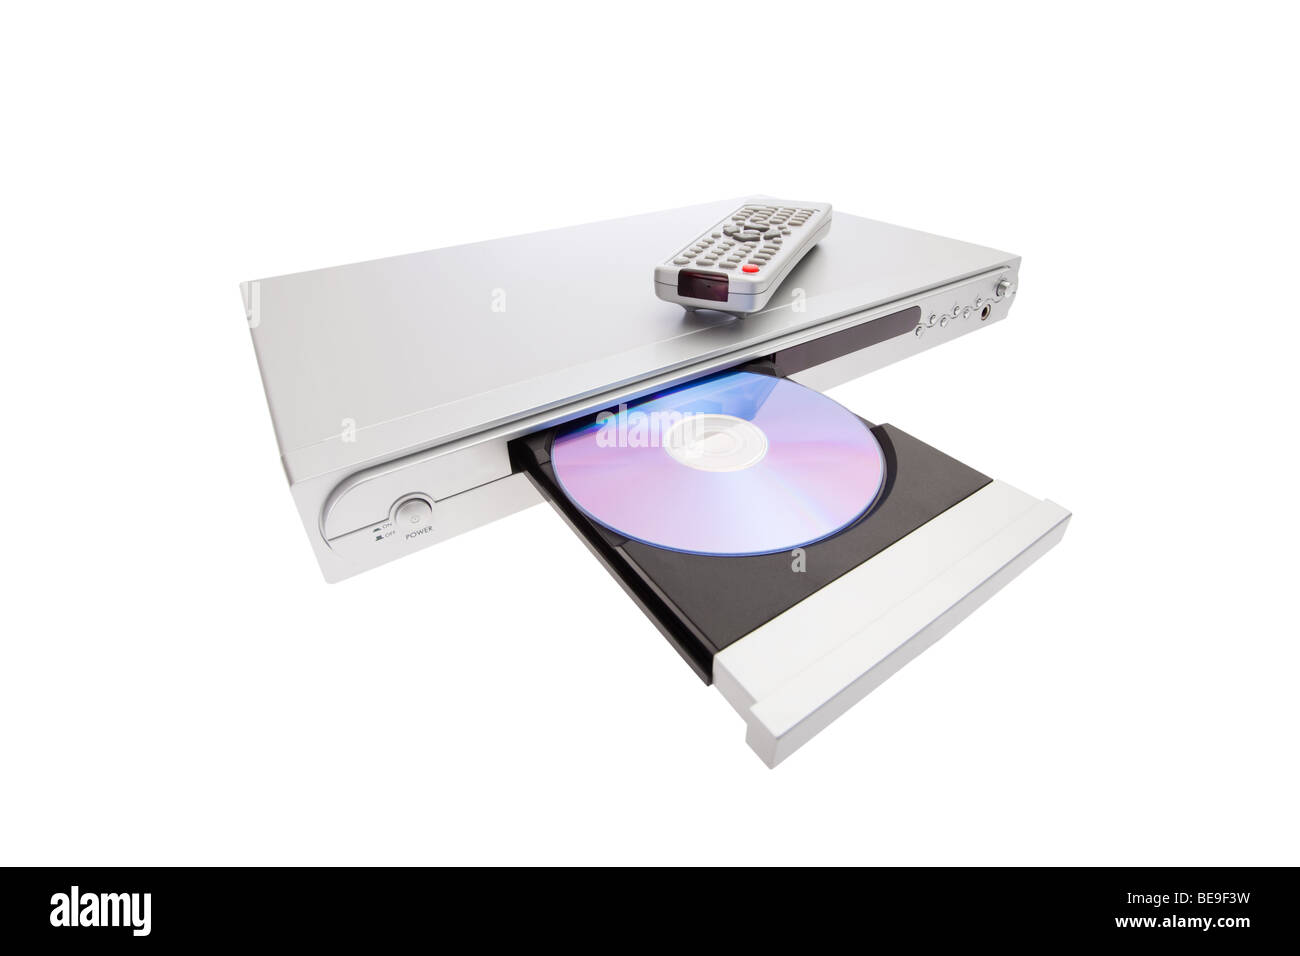 DVD player ejecting disc with remote control isolated on white background. open tray disk blu-ray cd compact cutout - Stock Image